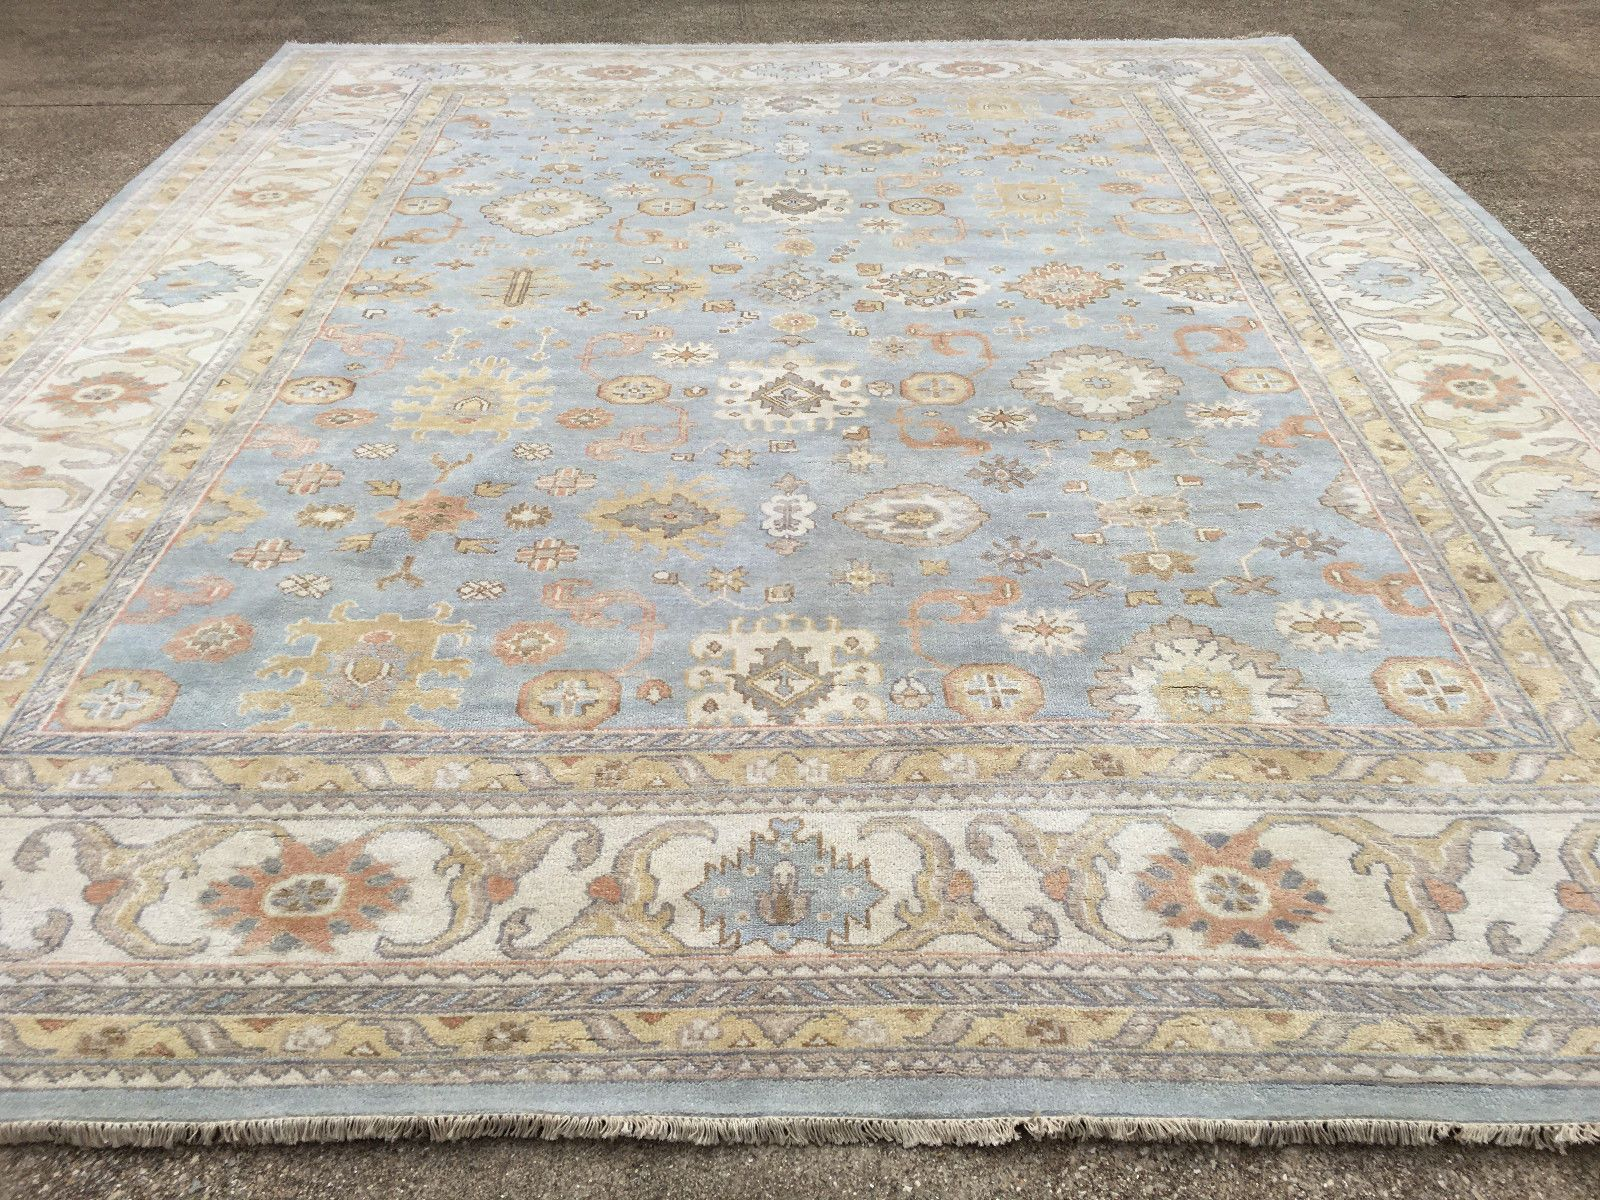 12x15 New Hand Knotted Rug Wool Made Blue Muted Oushak 12 X 15 Persian Rugs 14 Ebay Hand Knotted Persian Rug Rugs Persian Rug